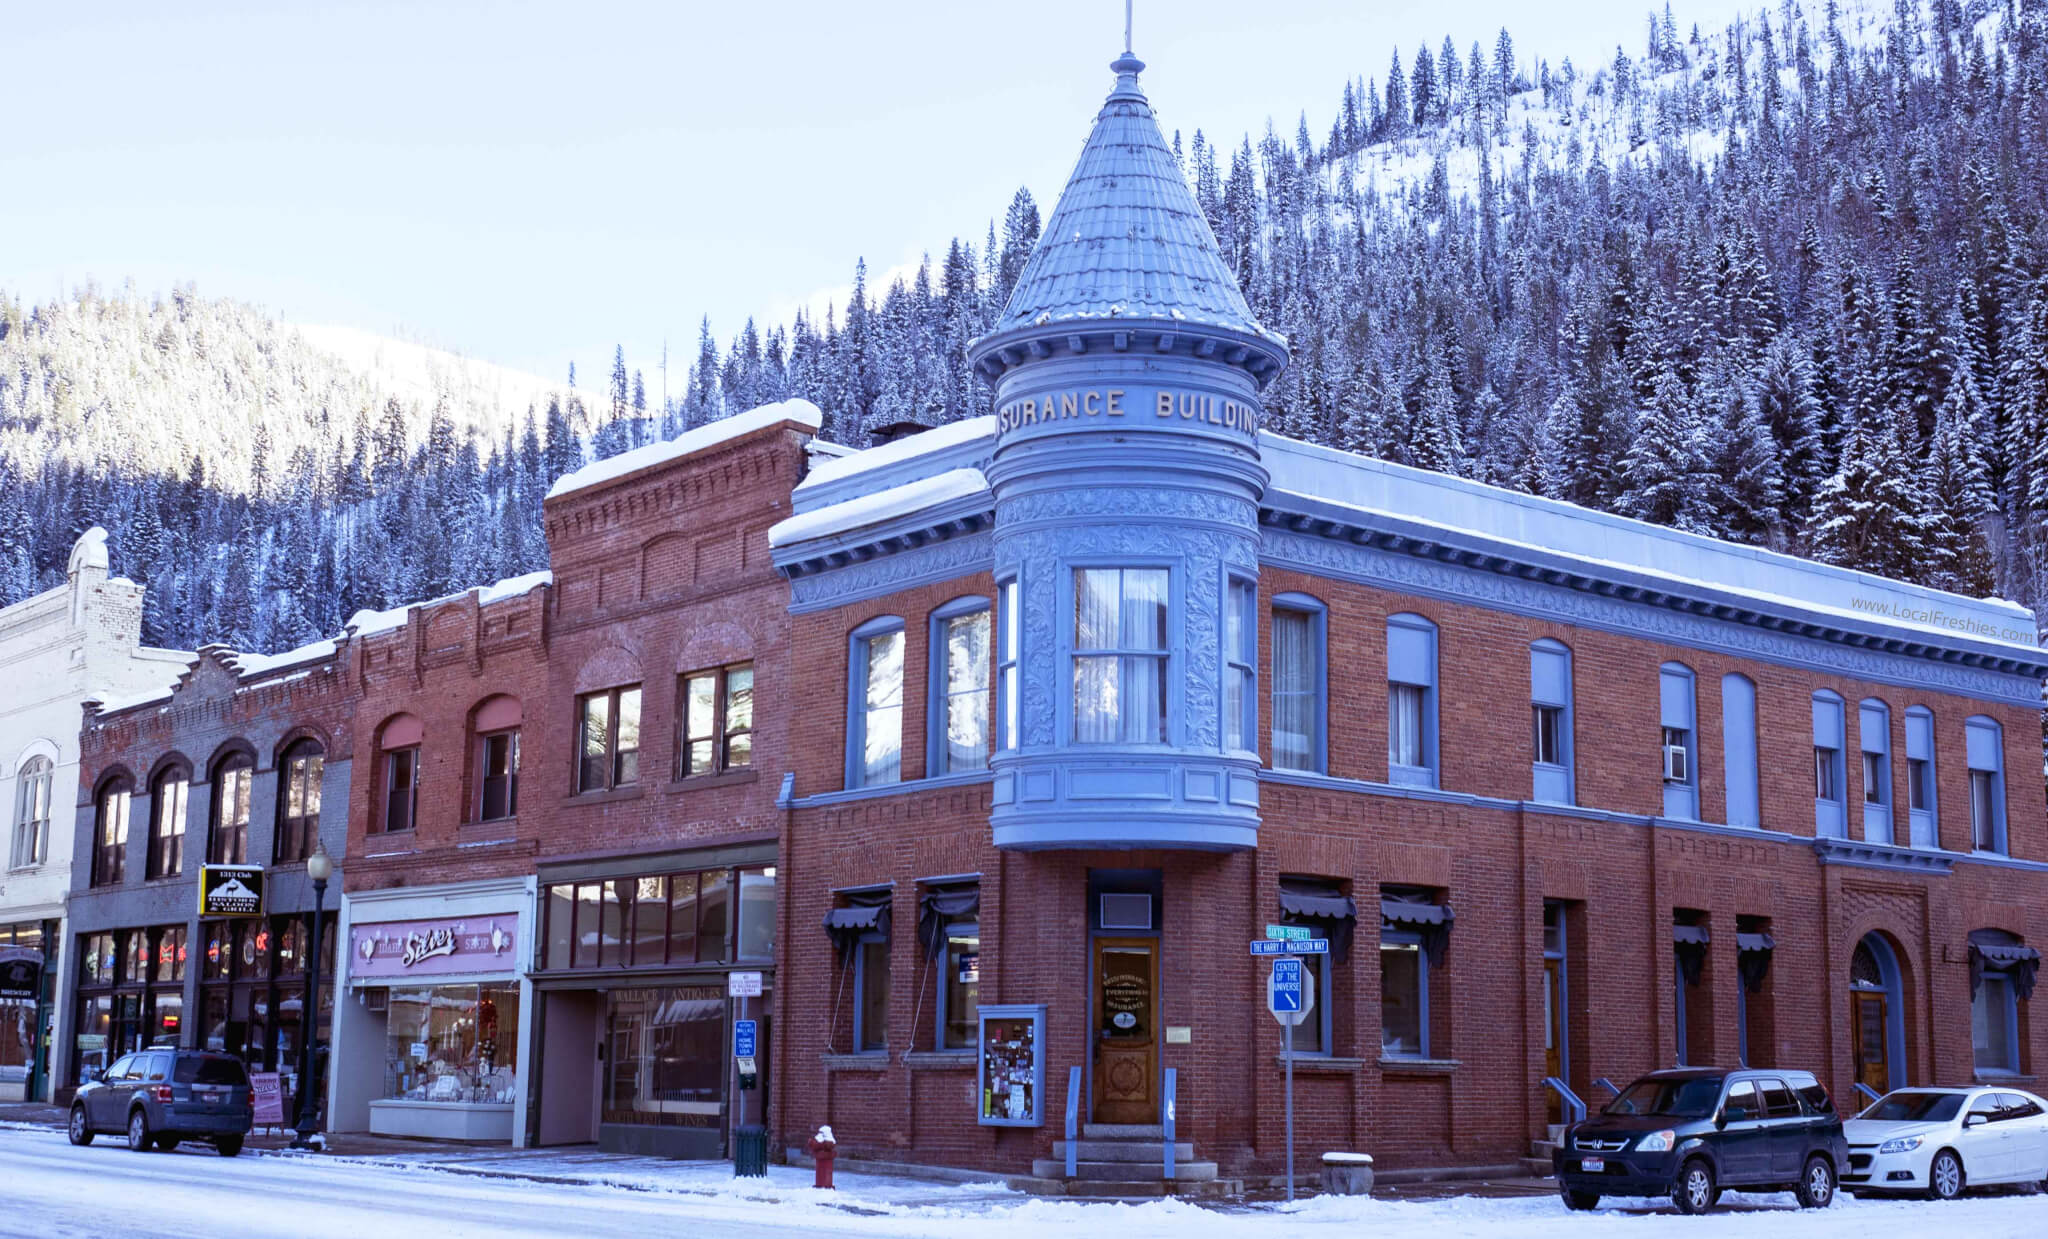 Historic Downtown Wallace Idaho Center of the Universe